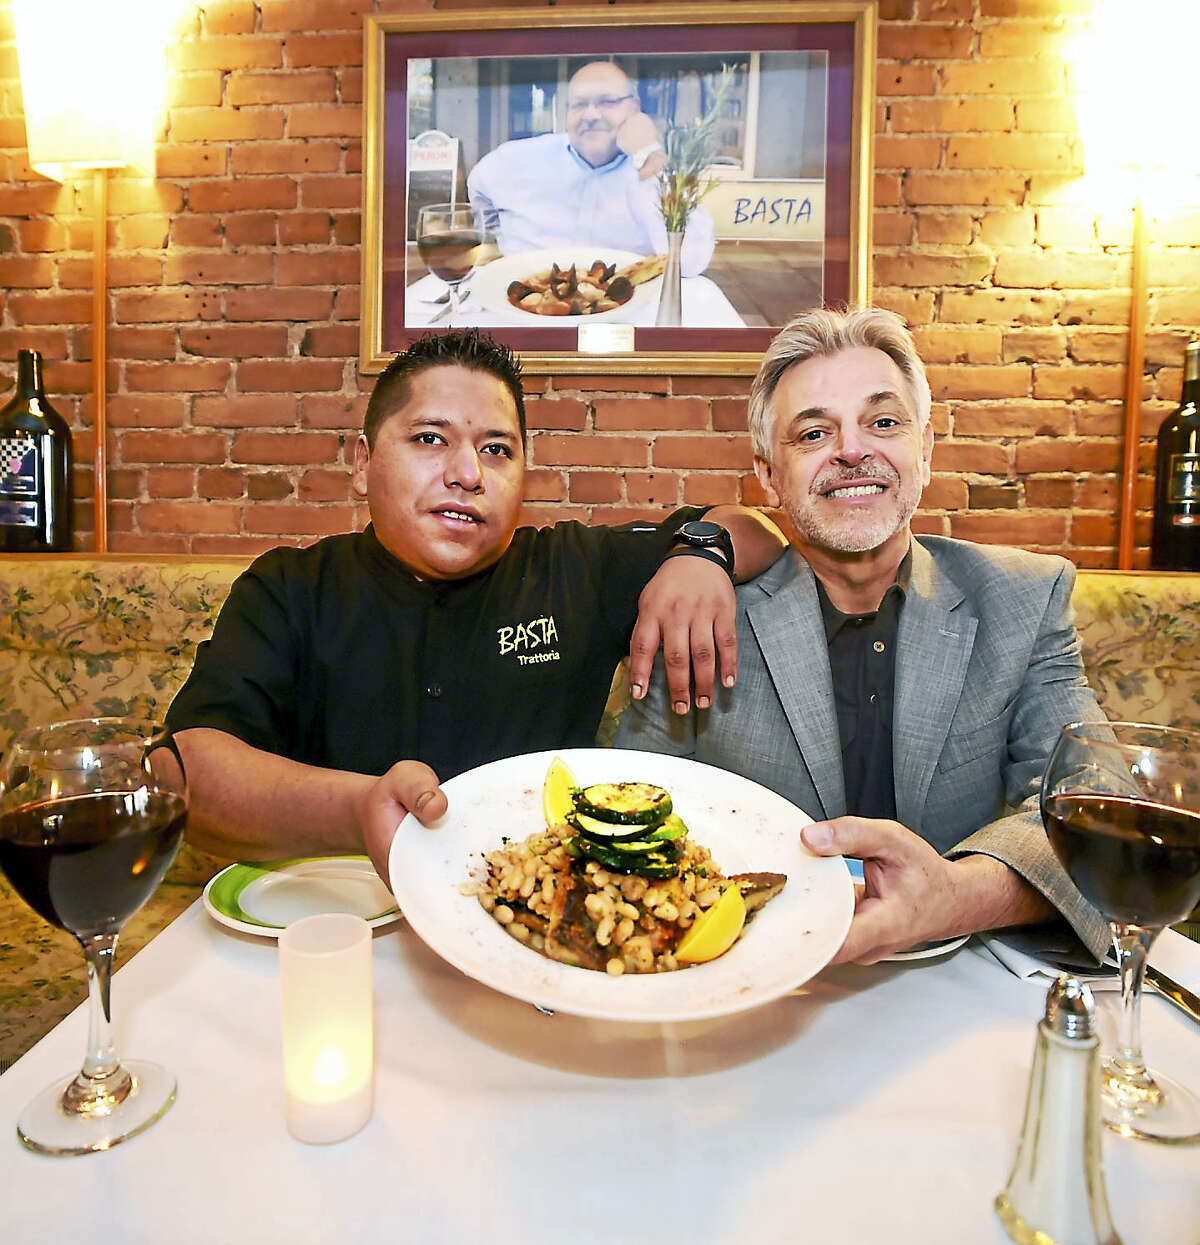 Chef Eduardo Saldana Pena, left, and Nino Ribeiro, co-owners of Basta Trattoria, with branzino Amalfi, a pan-seared mild white fish with extra virgin olive oil, lemon and roasted garlic over truffled organic white beans and roasted zucchini.